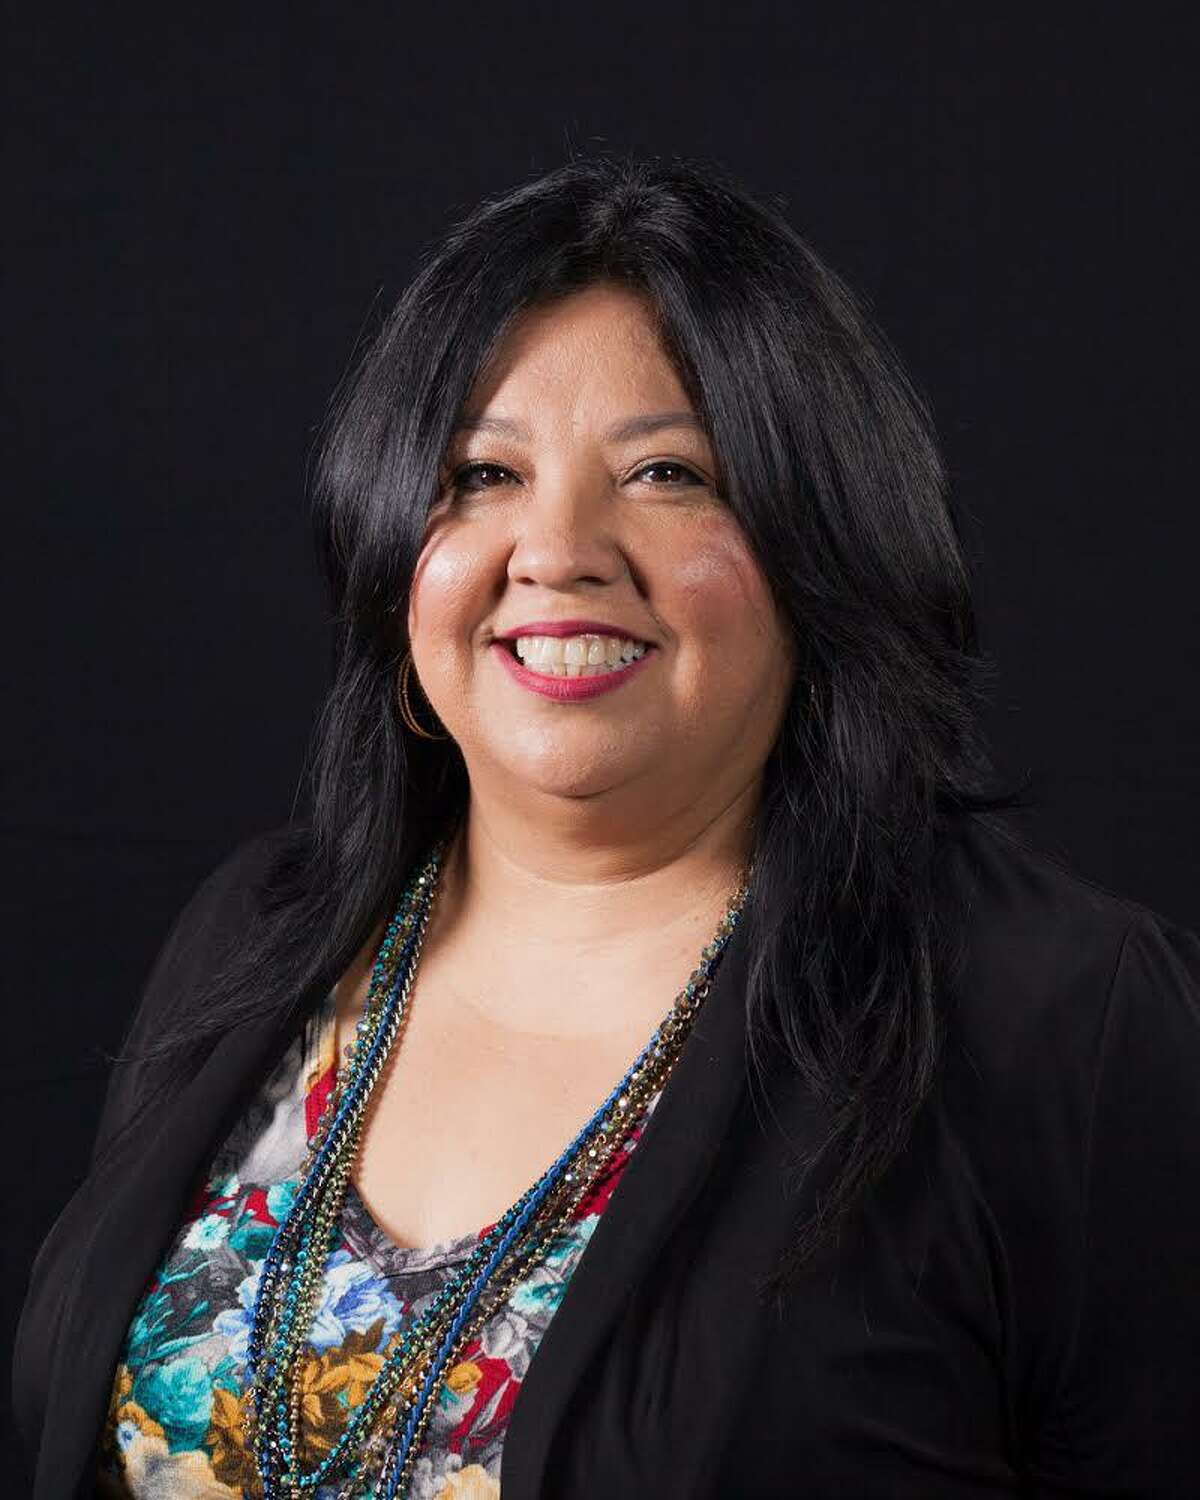 Yolanda Garza-Lopez, 53, is running for re-election to the Southwest ISD board of trustees.